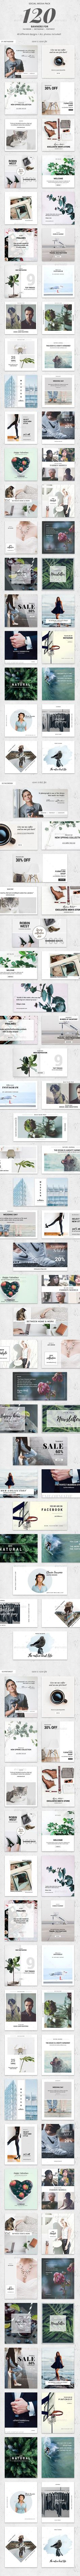 120 Social Media Banner — Photoshop PSD #Pinterest #sale • Download ➝ https://graphicriver.net/item/120-social-media-banner/19538791?ref=pxcr